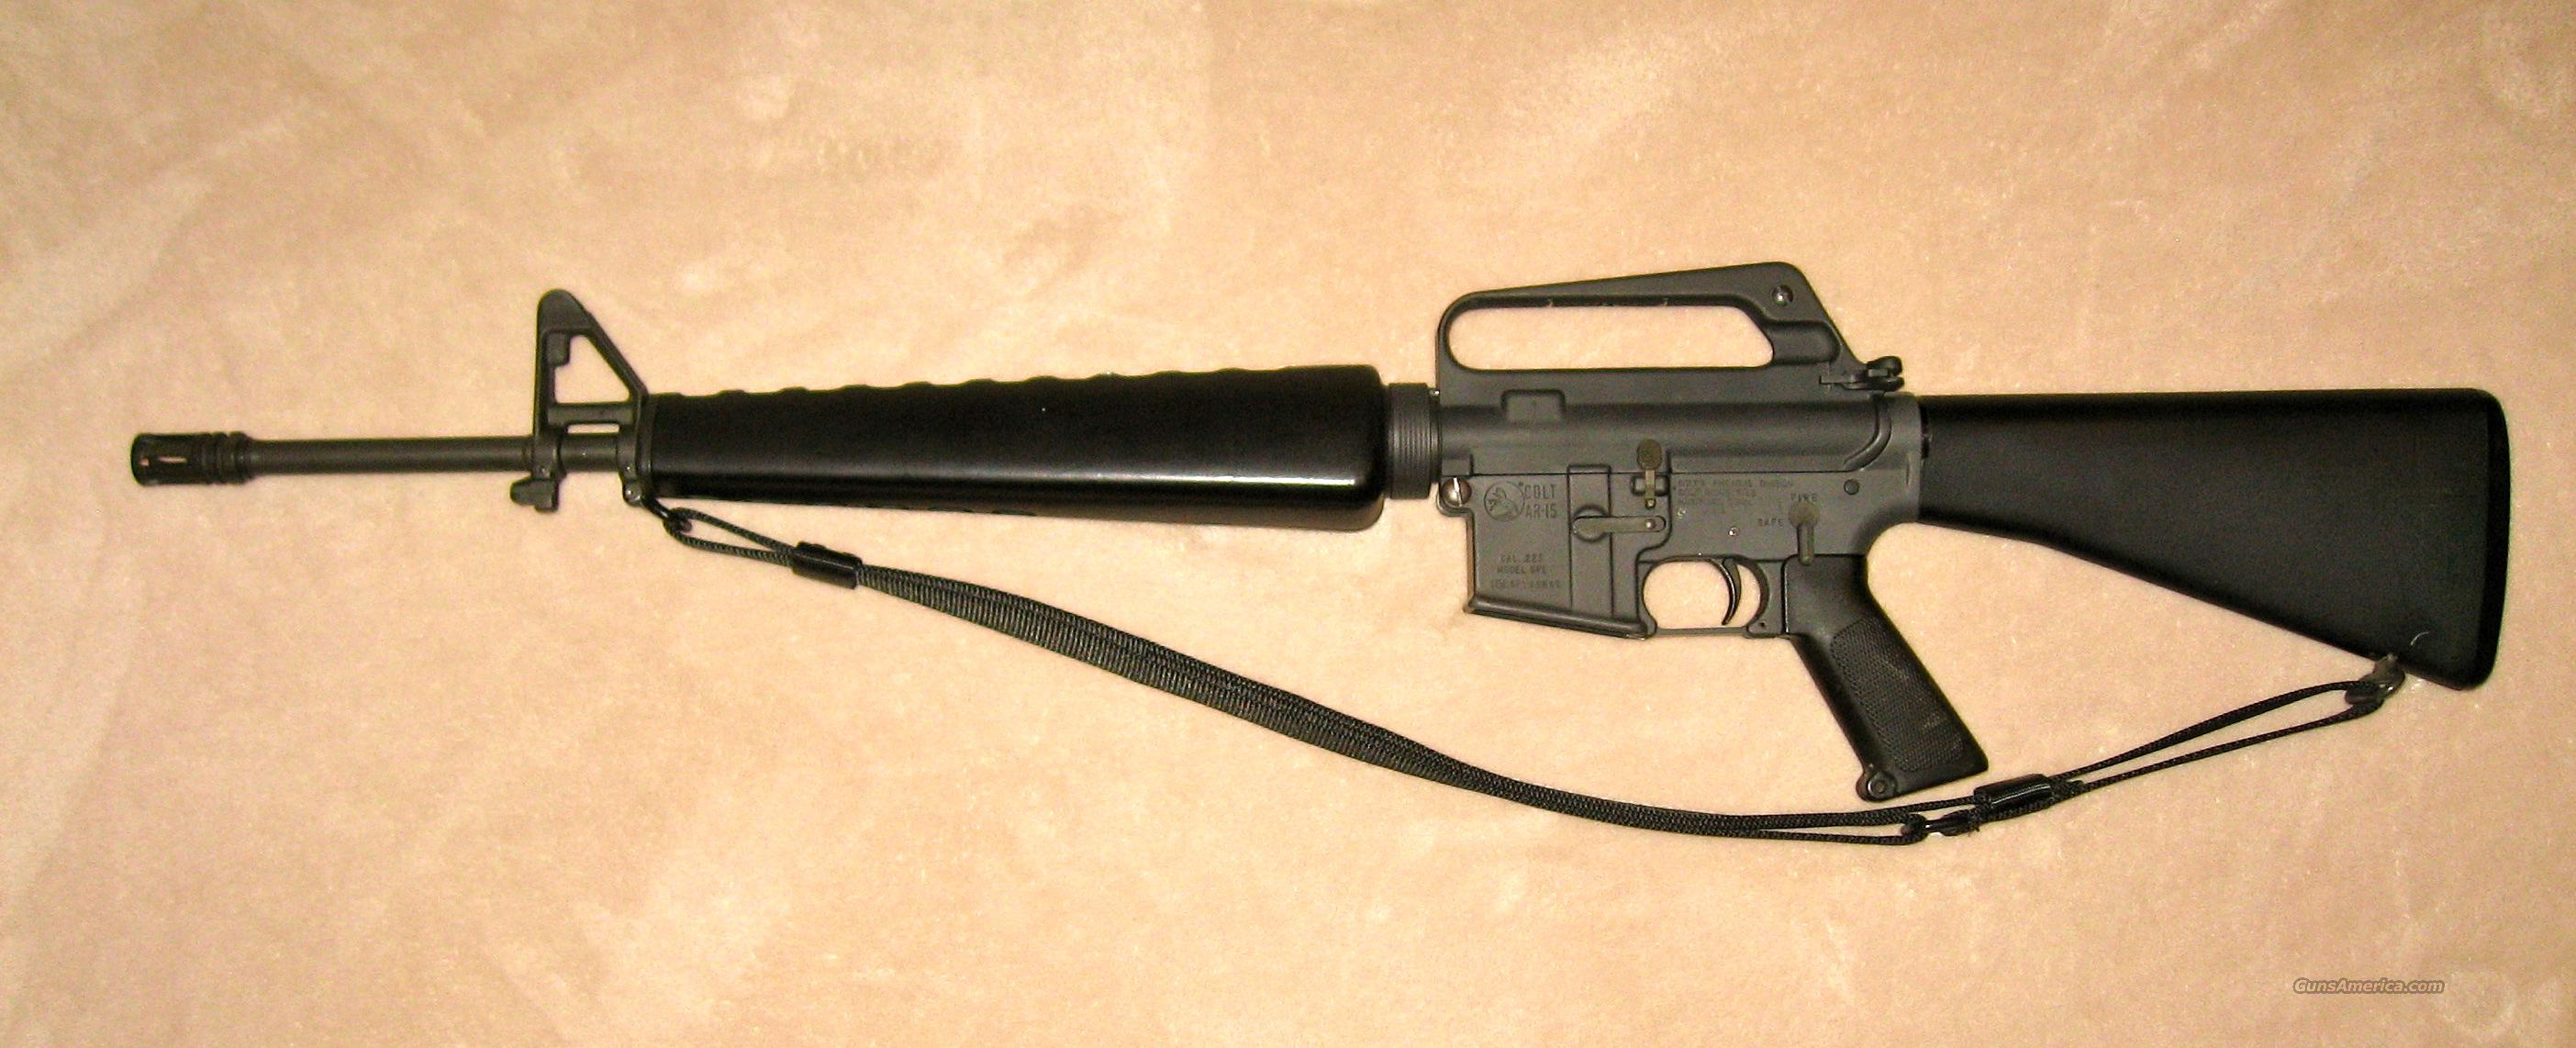 Colt AR-15 .223 SP1 Sporter Pre-Ban  Guns > Rifles > Colt Military/Tactical Rifles